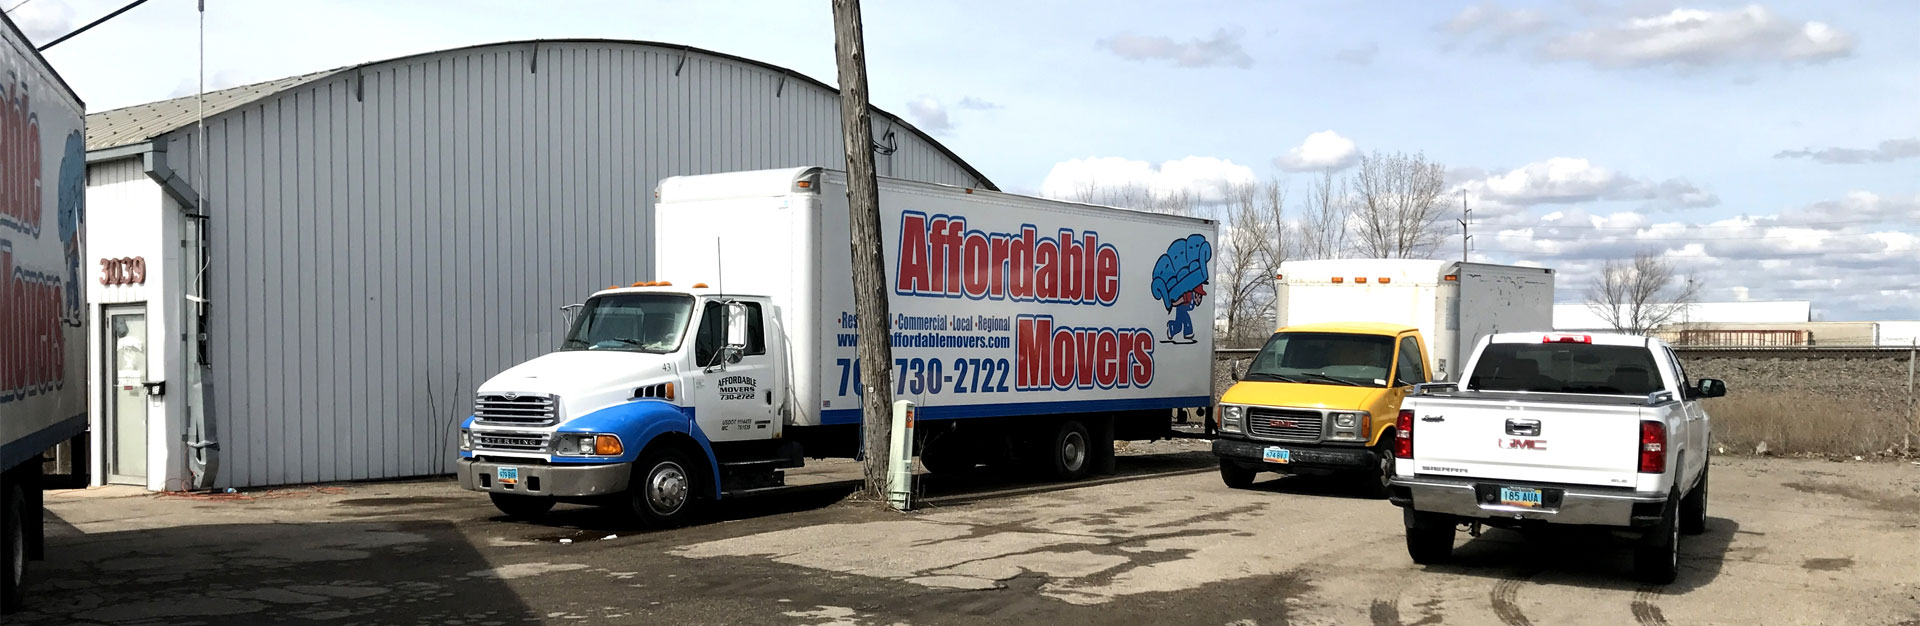 Affordable Movers - Offers and Info